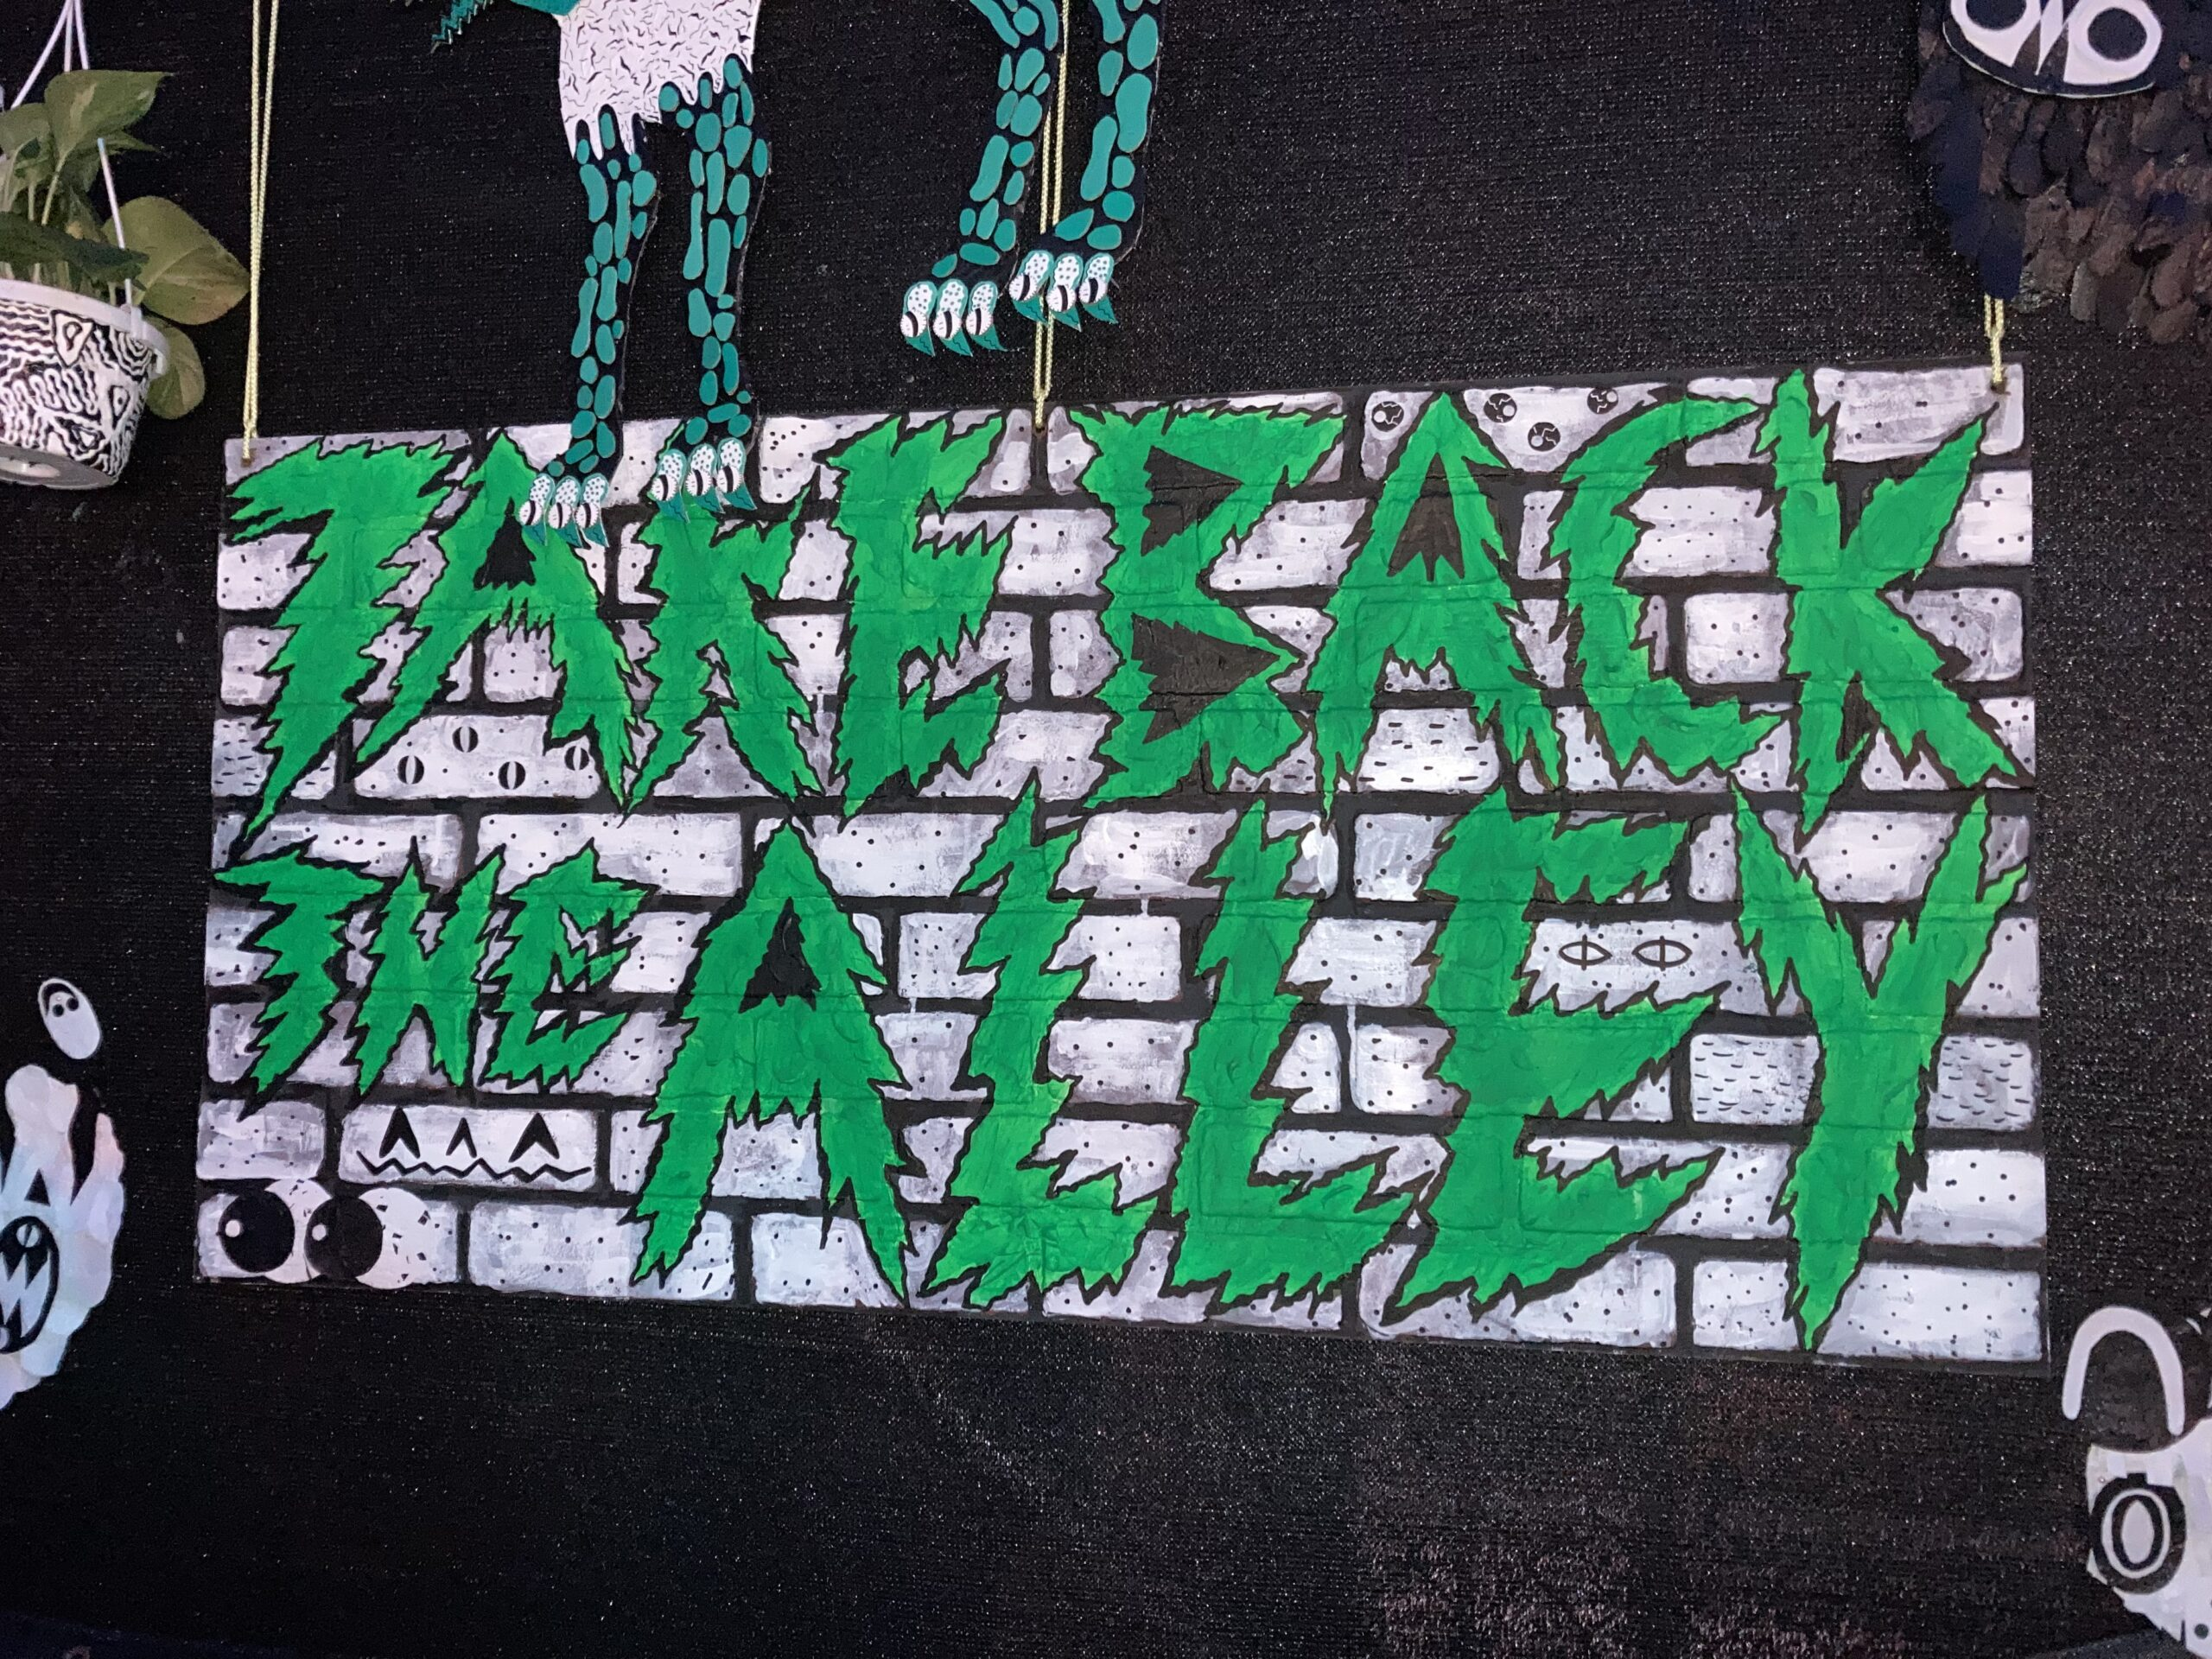 Take Back The Alley sign